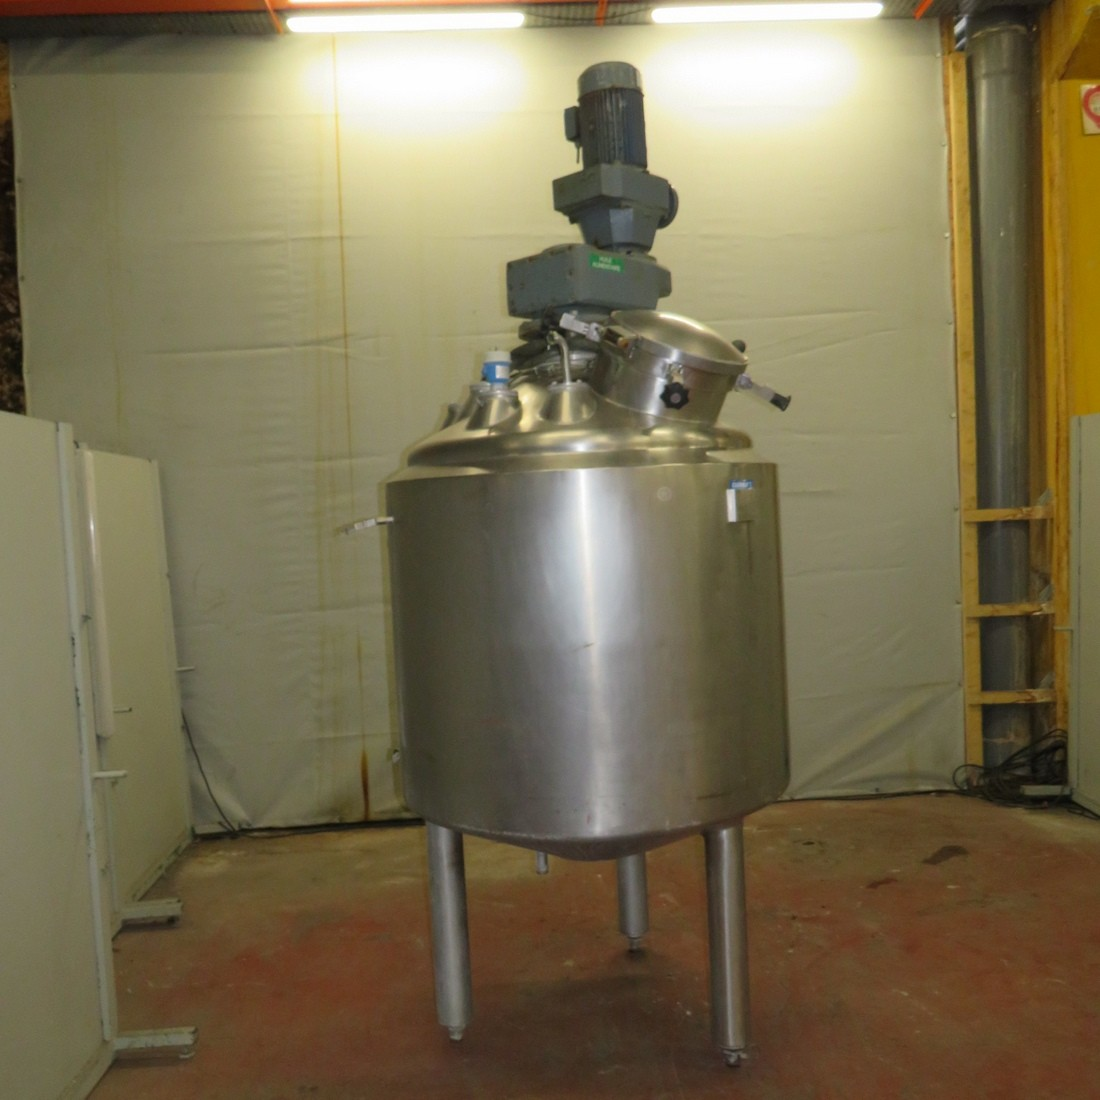 R6MA6131  Stainless steel APPARATE UND BEHALTER mixing tank 985 litres double jacket